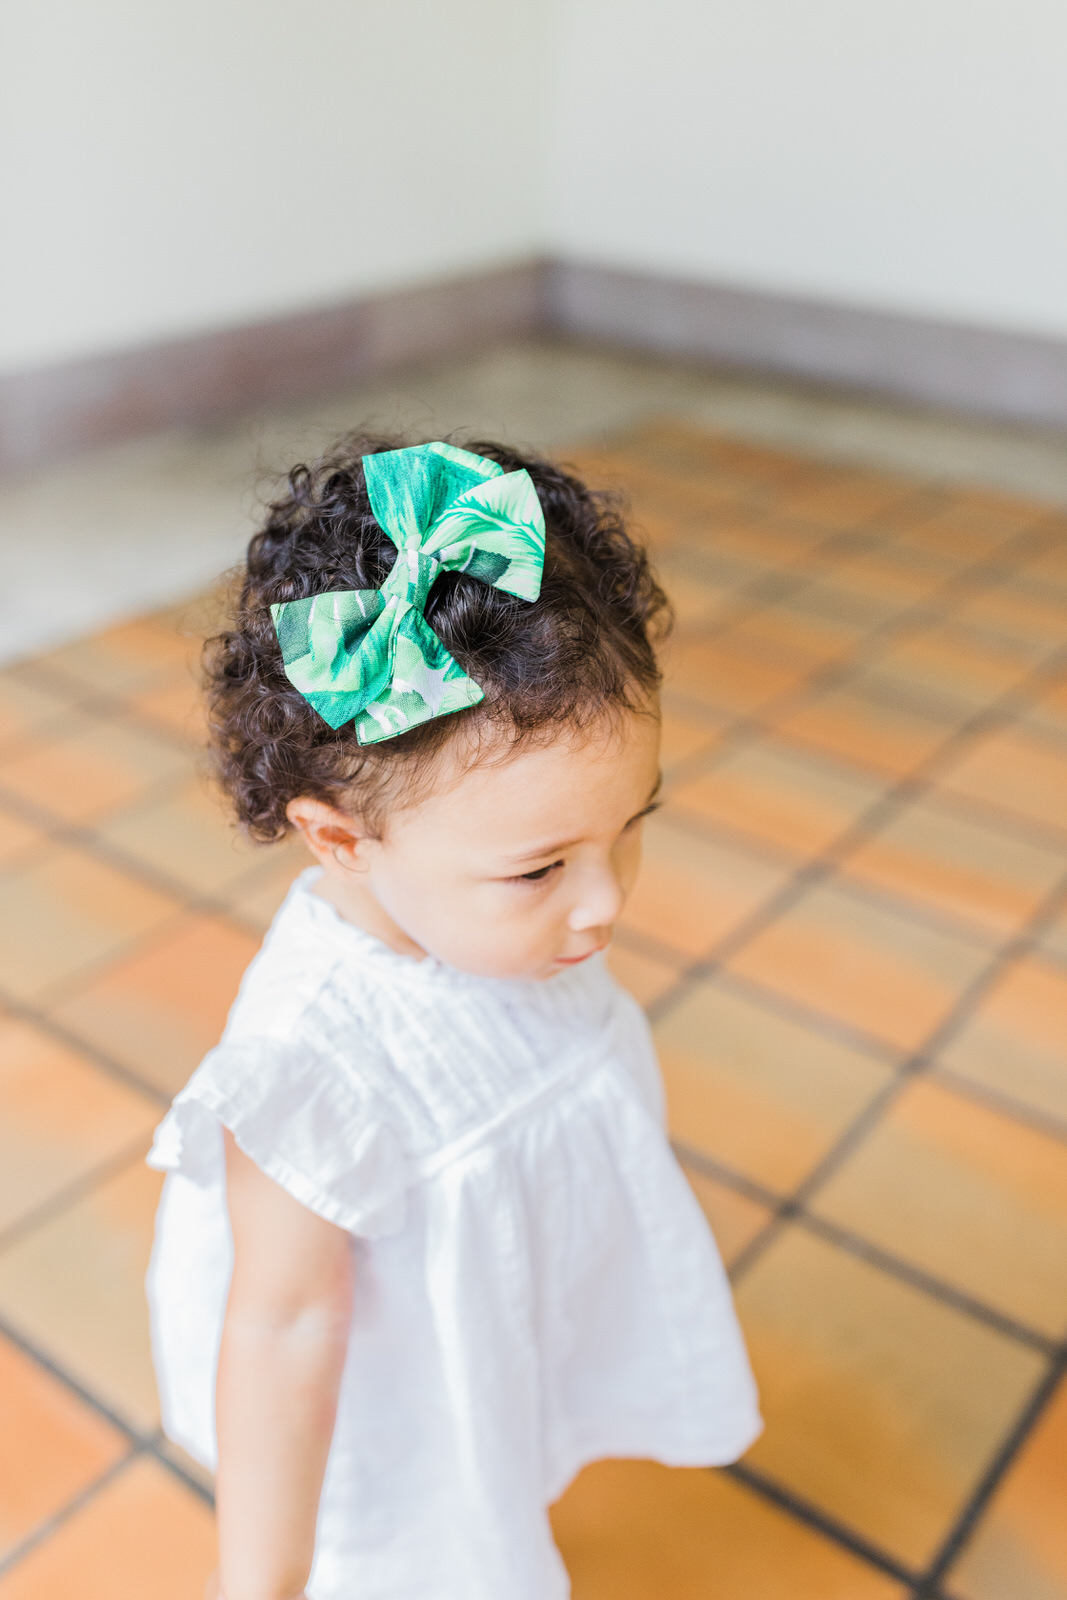 big-island-photographer-small-business-toddler-girls-bows-summer-collection-2484.jpg